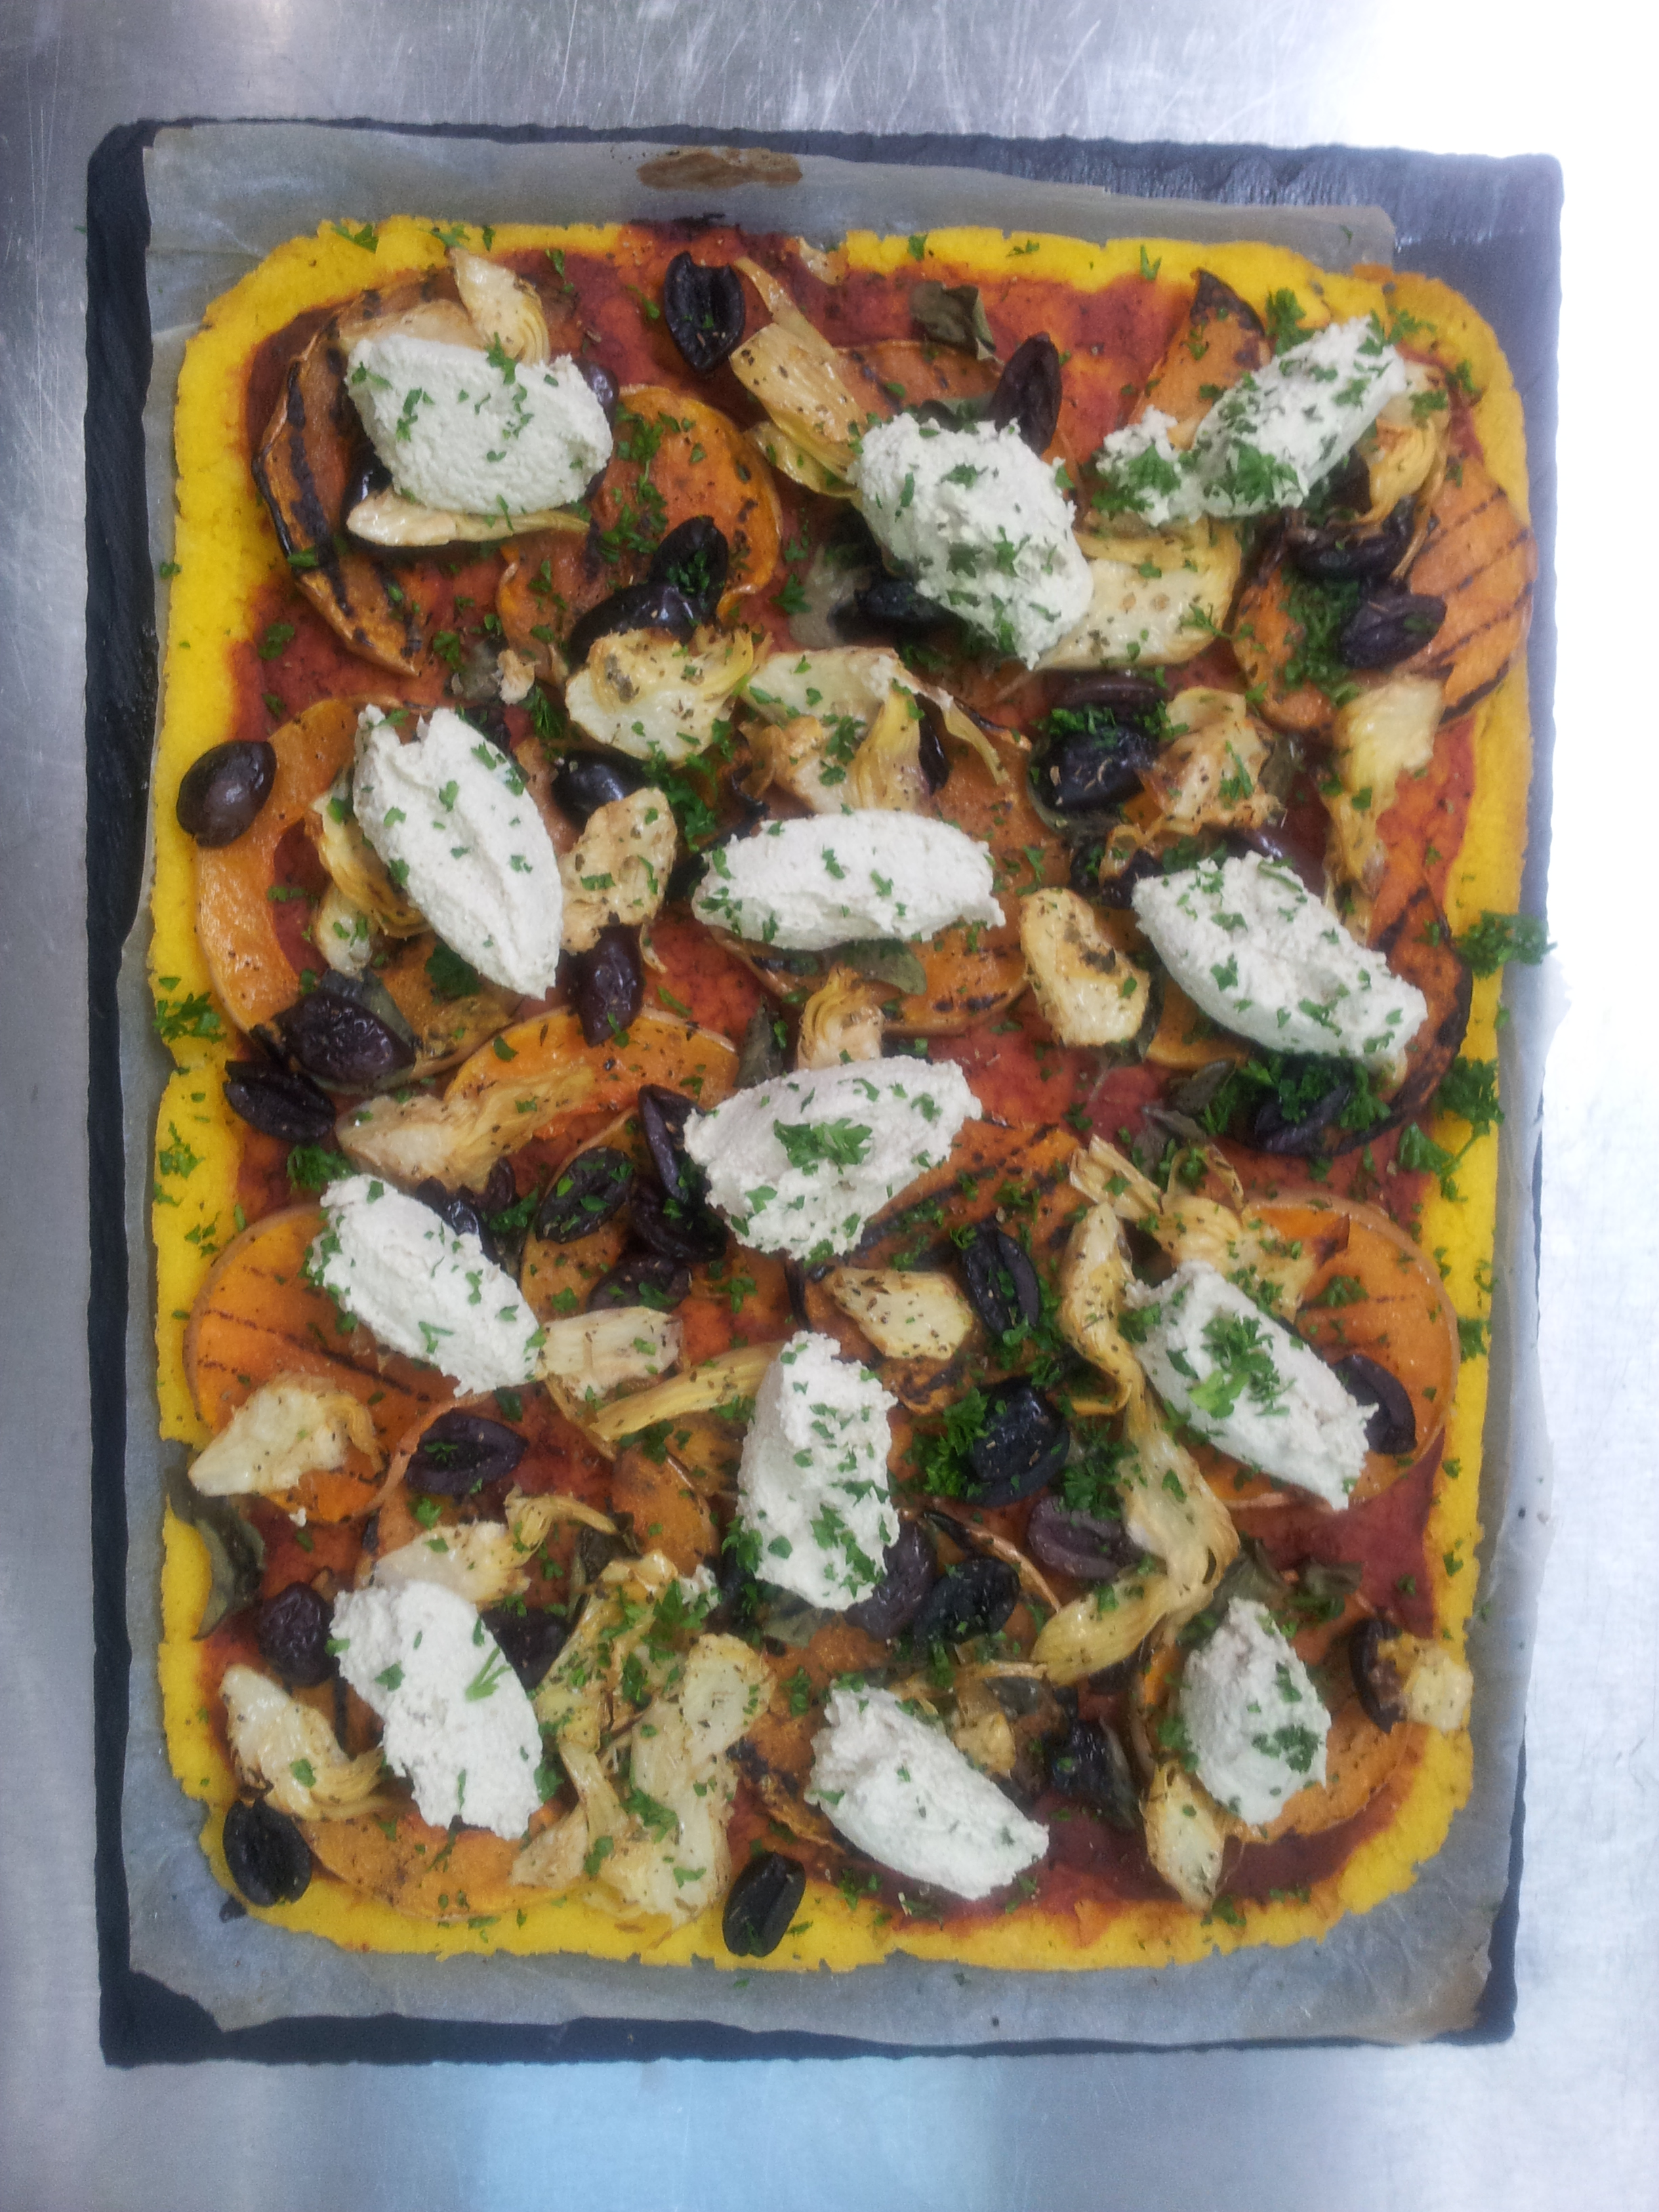 Polenta Pizza with loads of goodies....sunflower cream cheese, artichokes, grilled squash and fennel